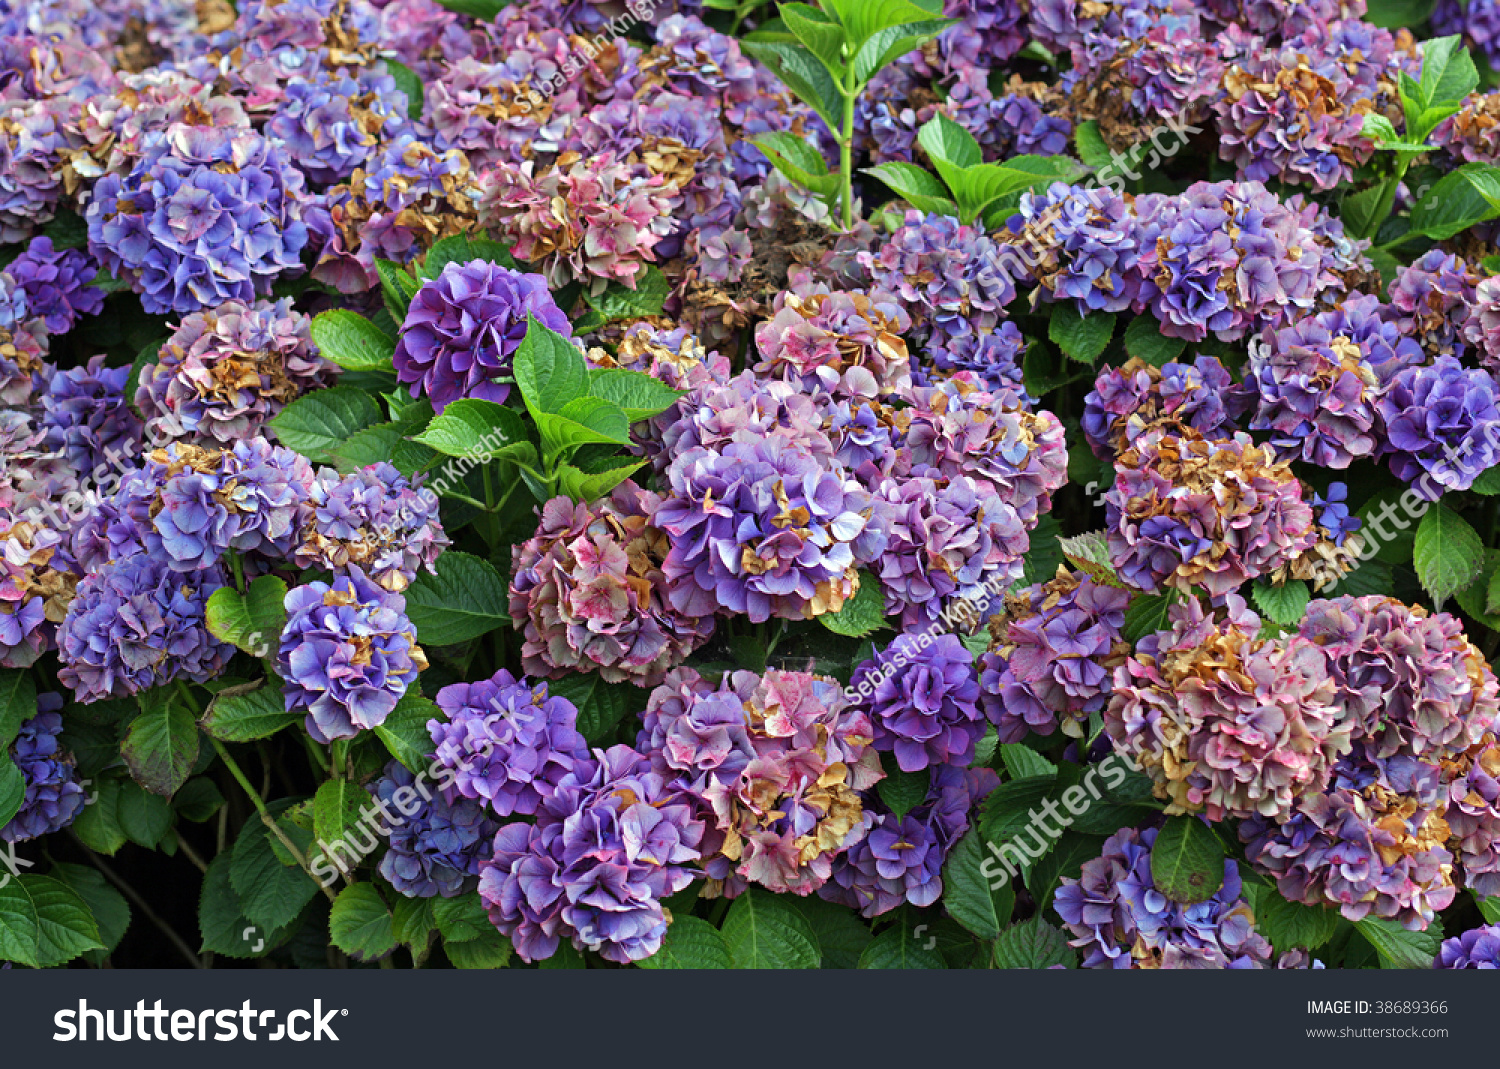 Hydrangea Bush Purple Flowers Stock Photo Edit Now 38689366